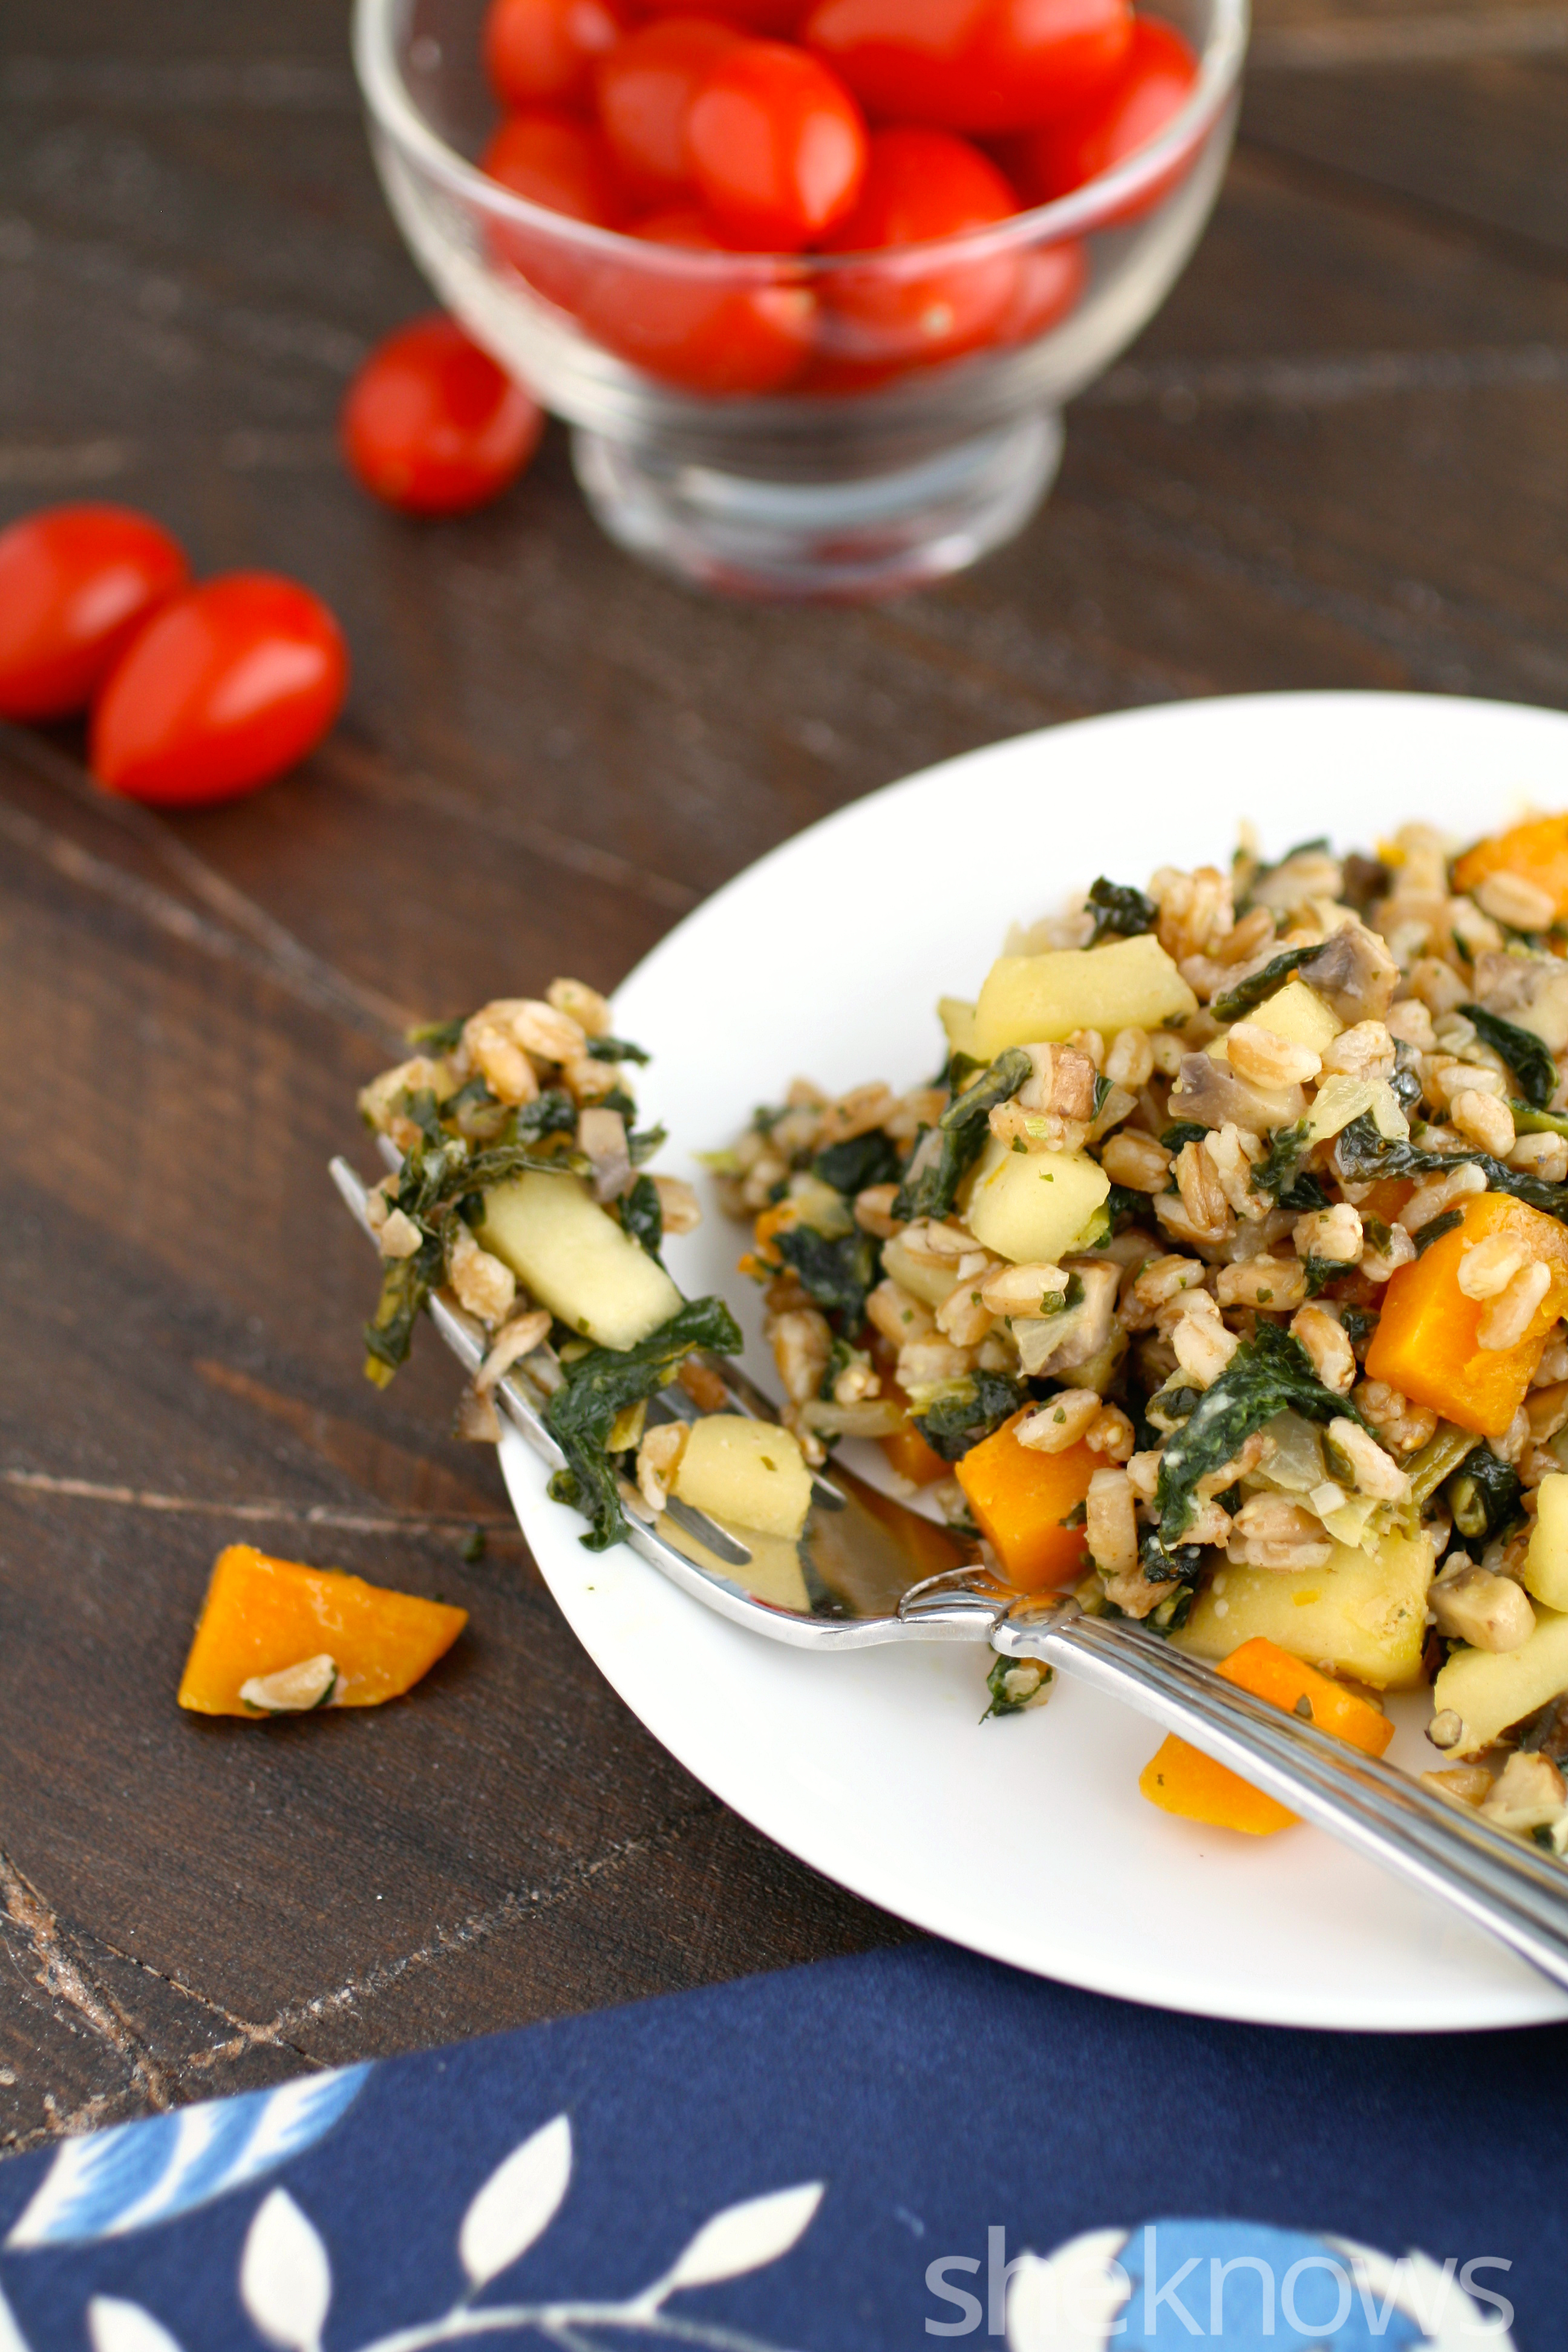 You'll love this Meatless Monday dish: farro, mushroom, and butternut squash is a treat this time of year.